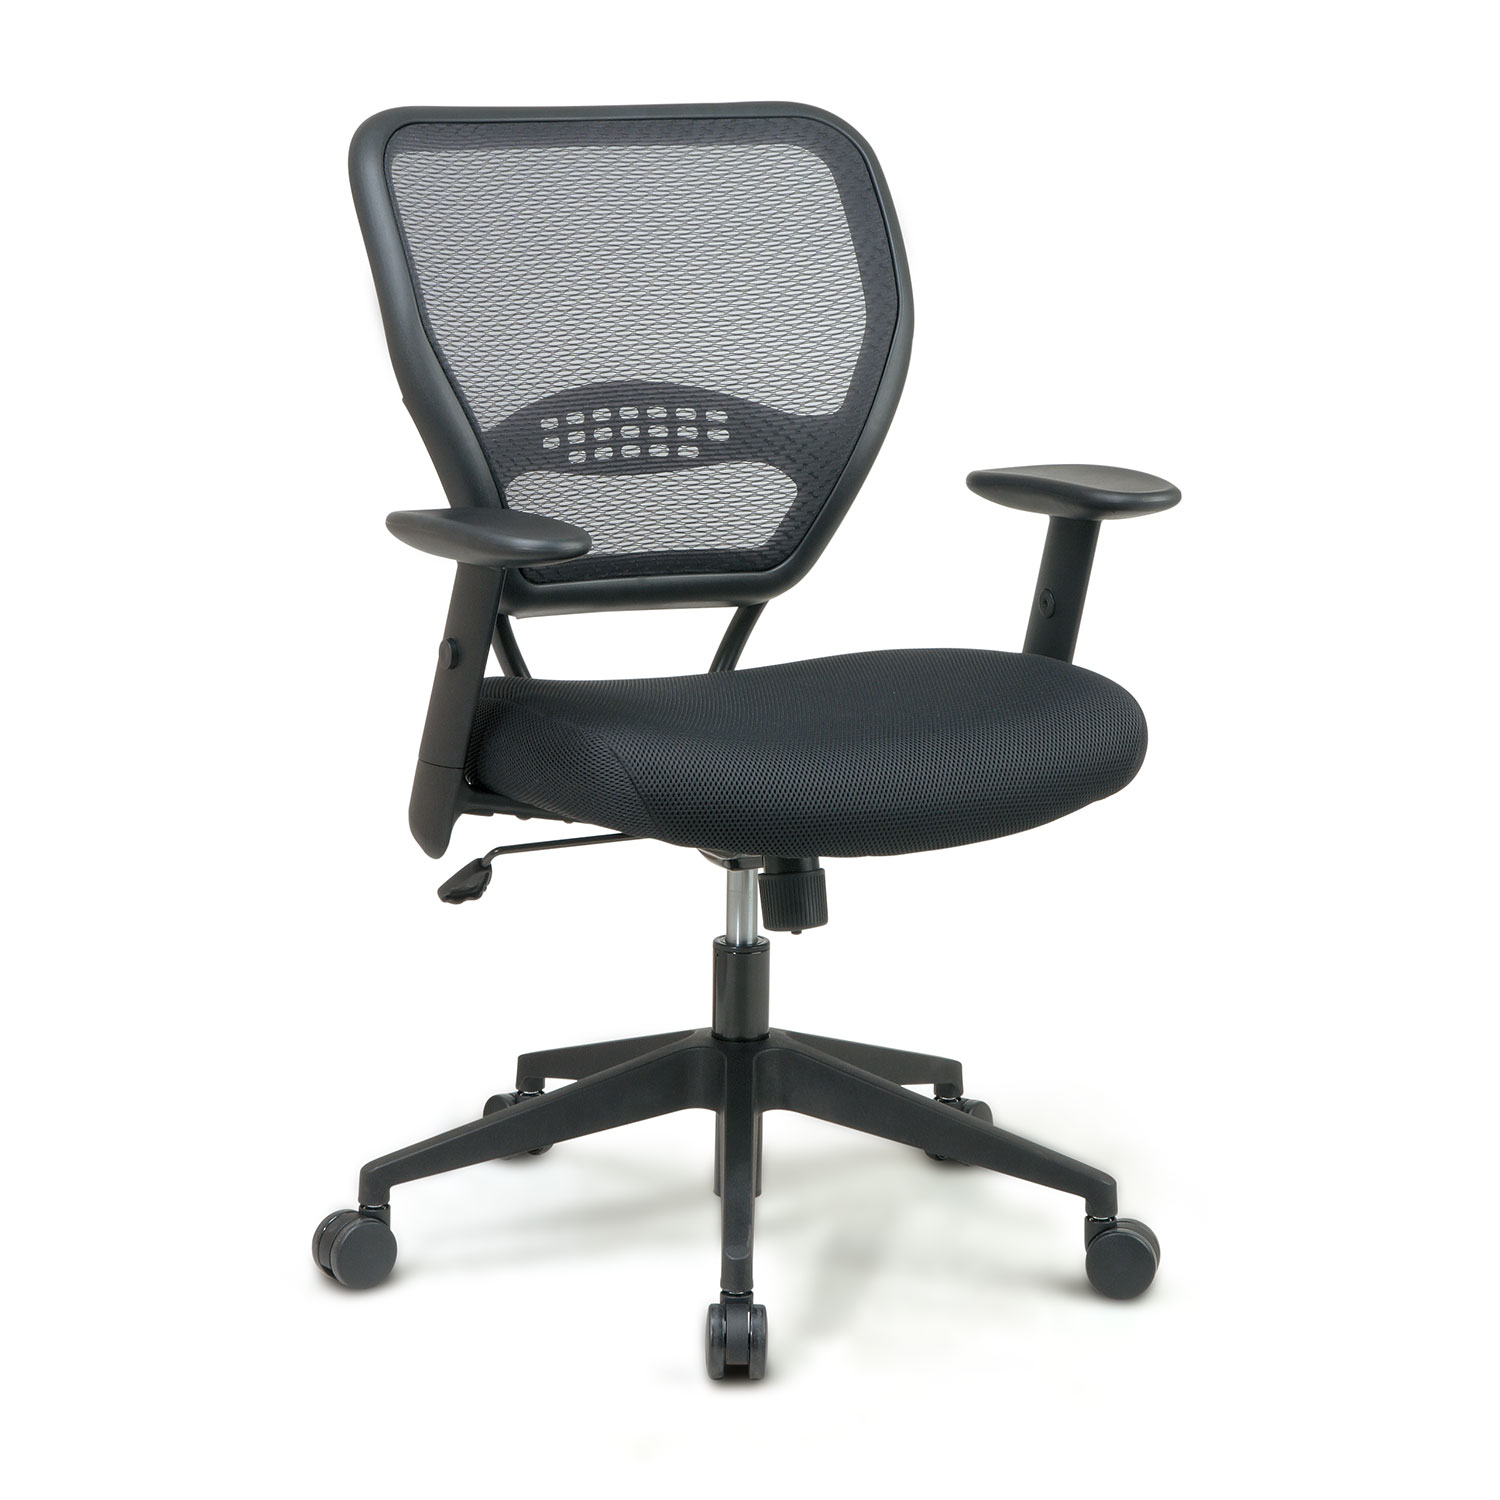 Nexstep office seating from HPFi High Point Furniture Industries